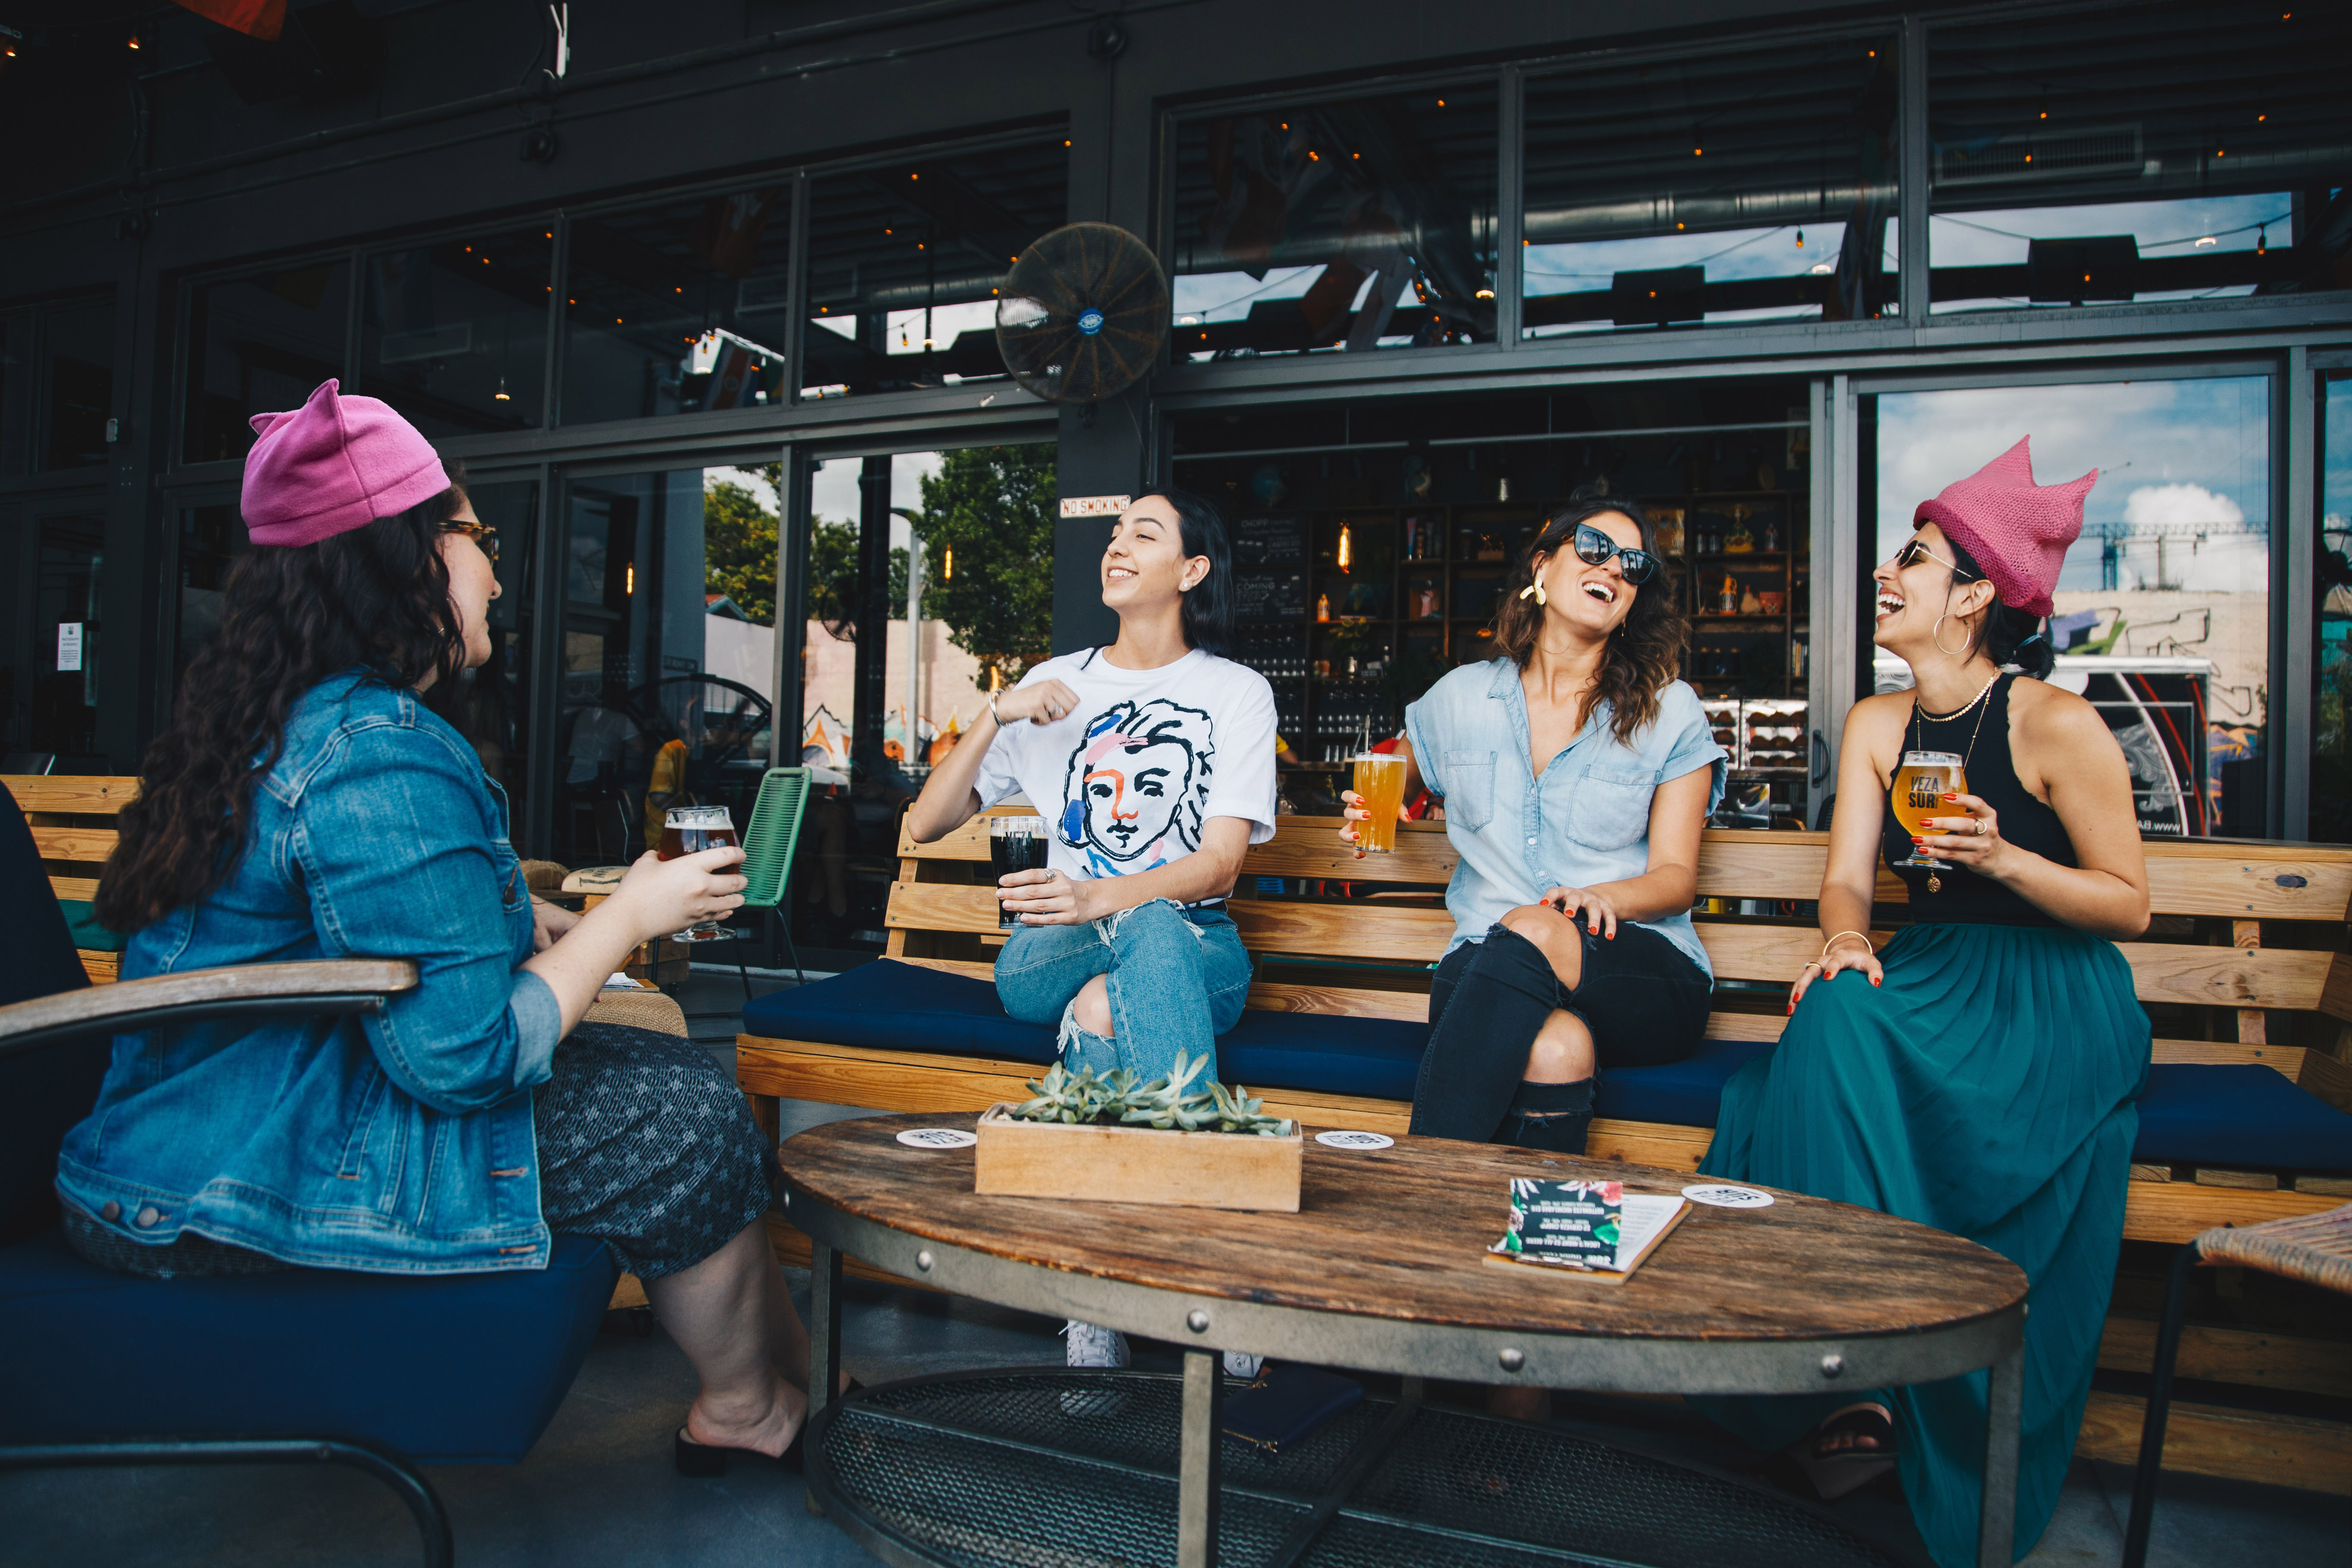 All-Female Book Club Unable To Choose Name Without Referencing Genitalia